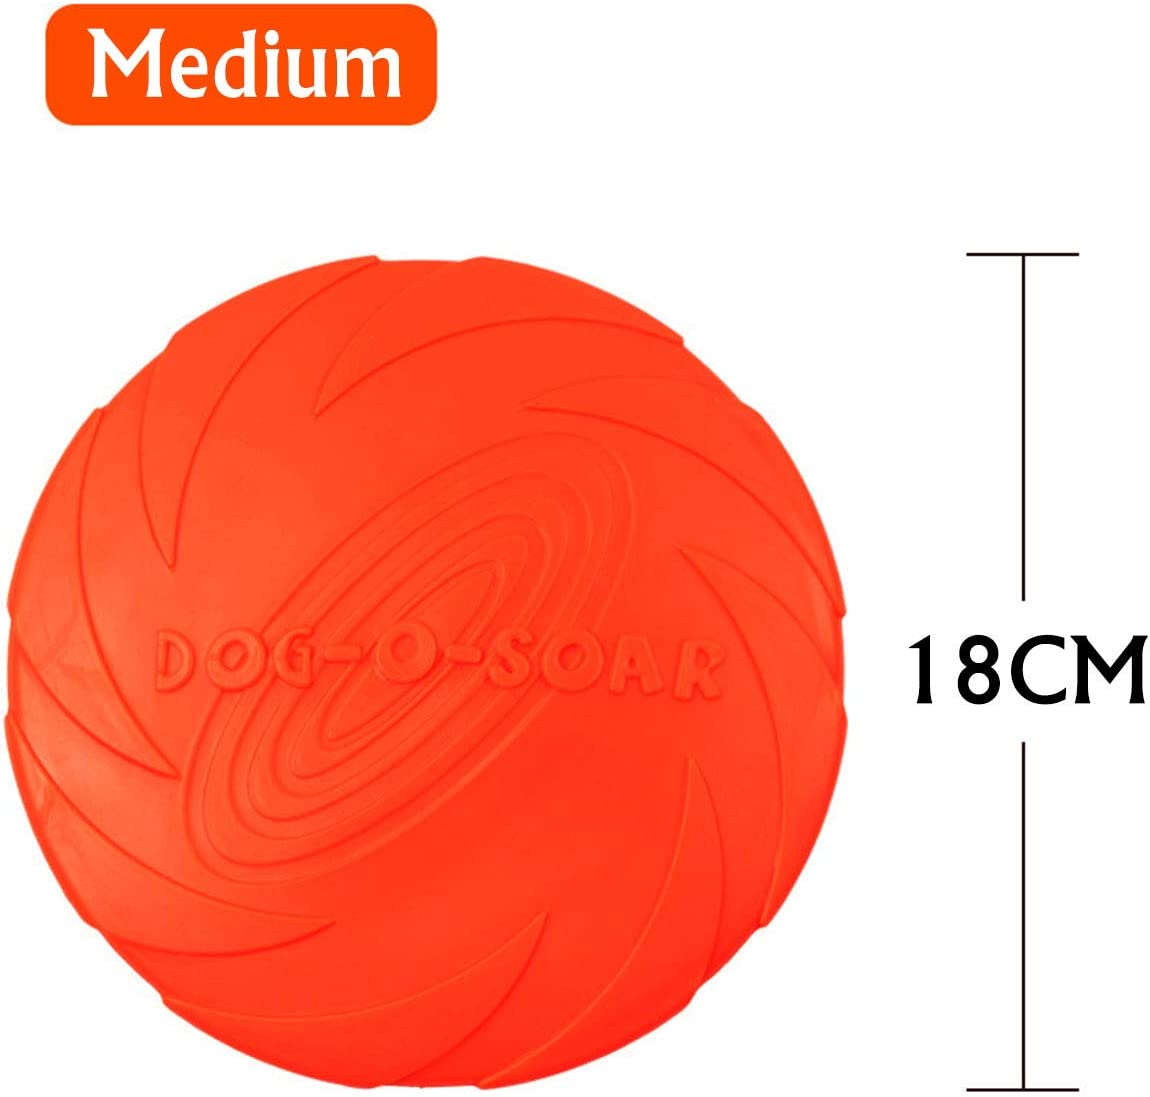 N\A Dog frisbee toys soar frisbee disc dog toy flyer soft dog frisbee float dog training throw toy indestructible puppy toys 2 pack